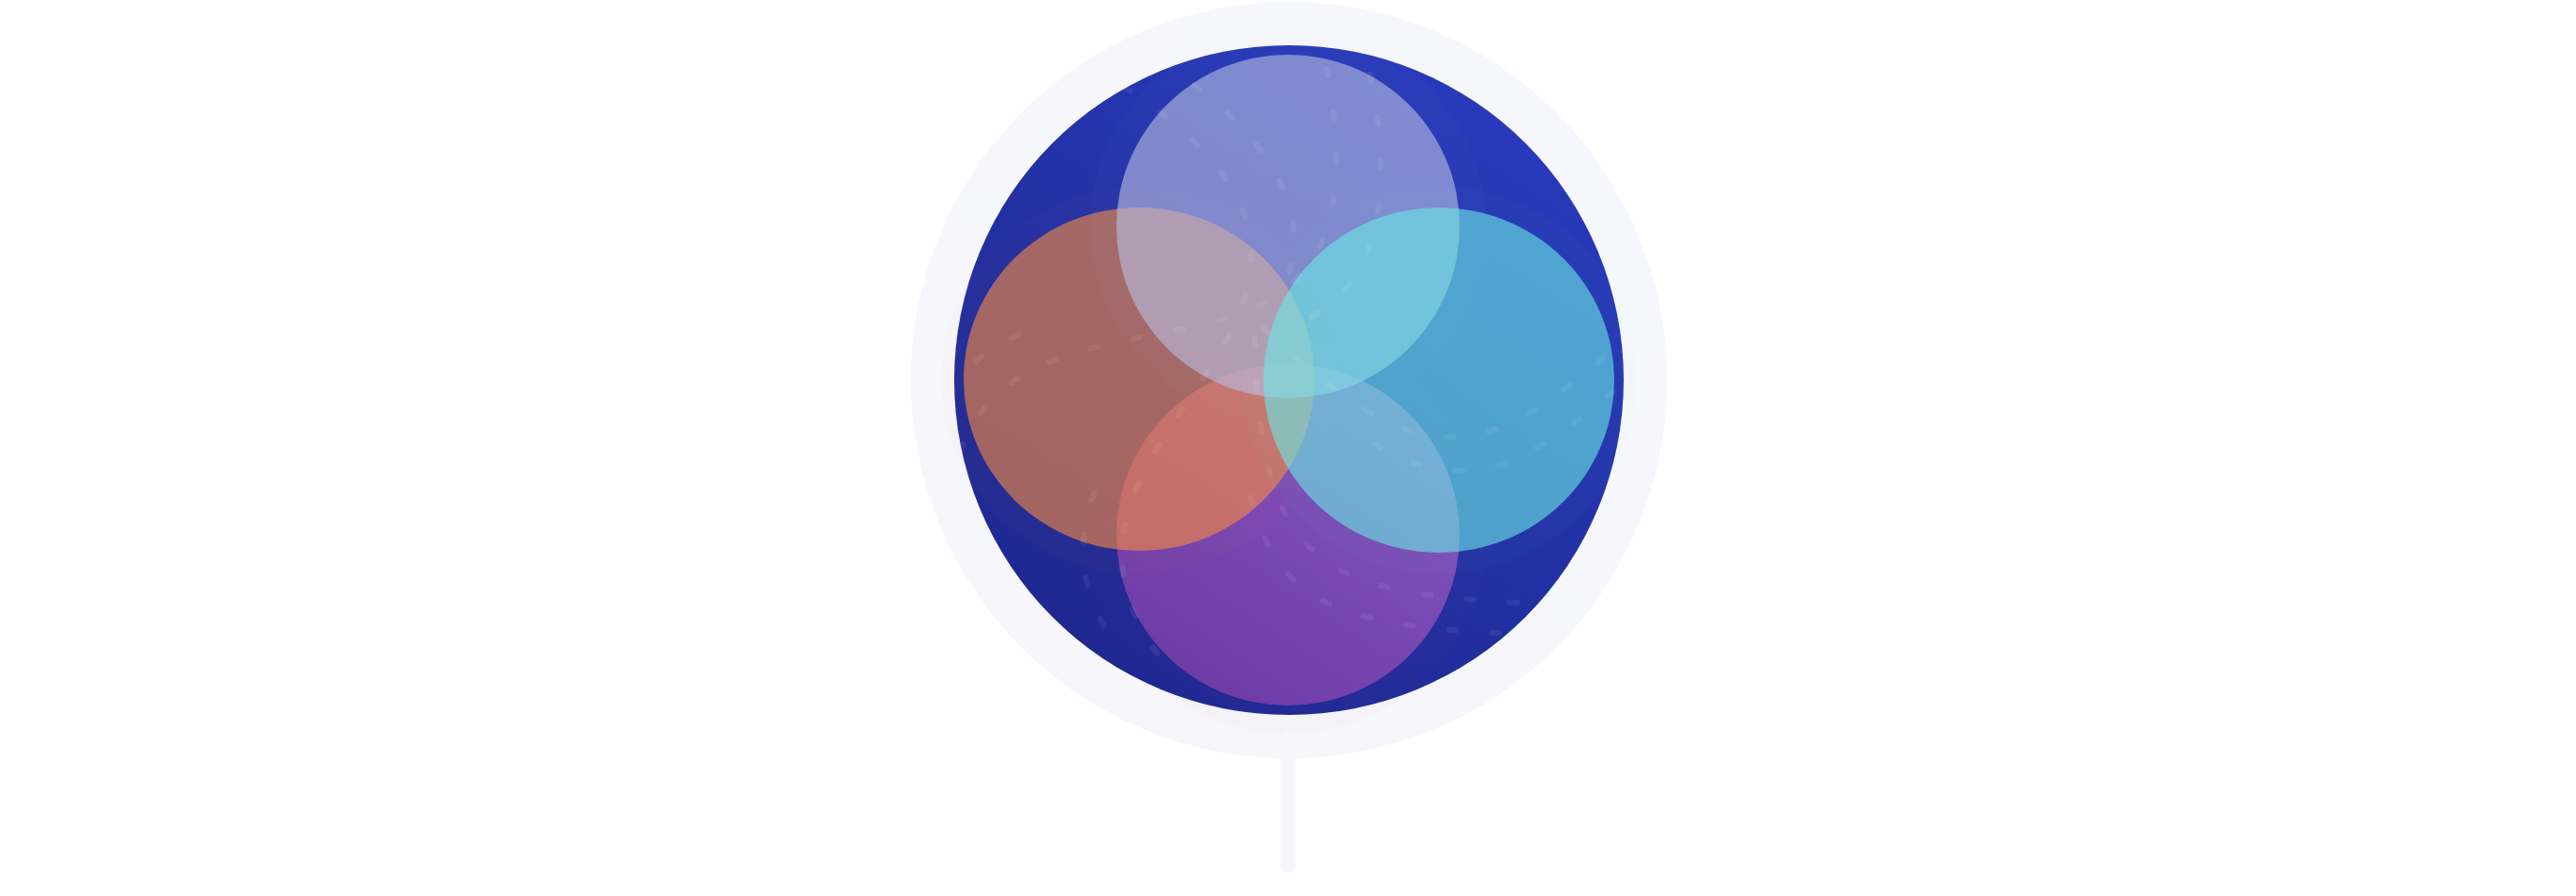 Illustration showing multiple color overlapping circles that symbolizes flexibility.